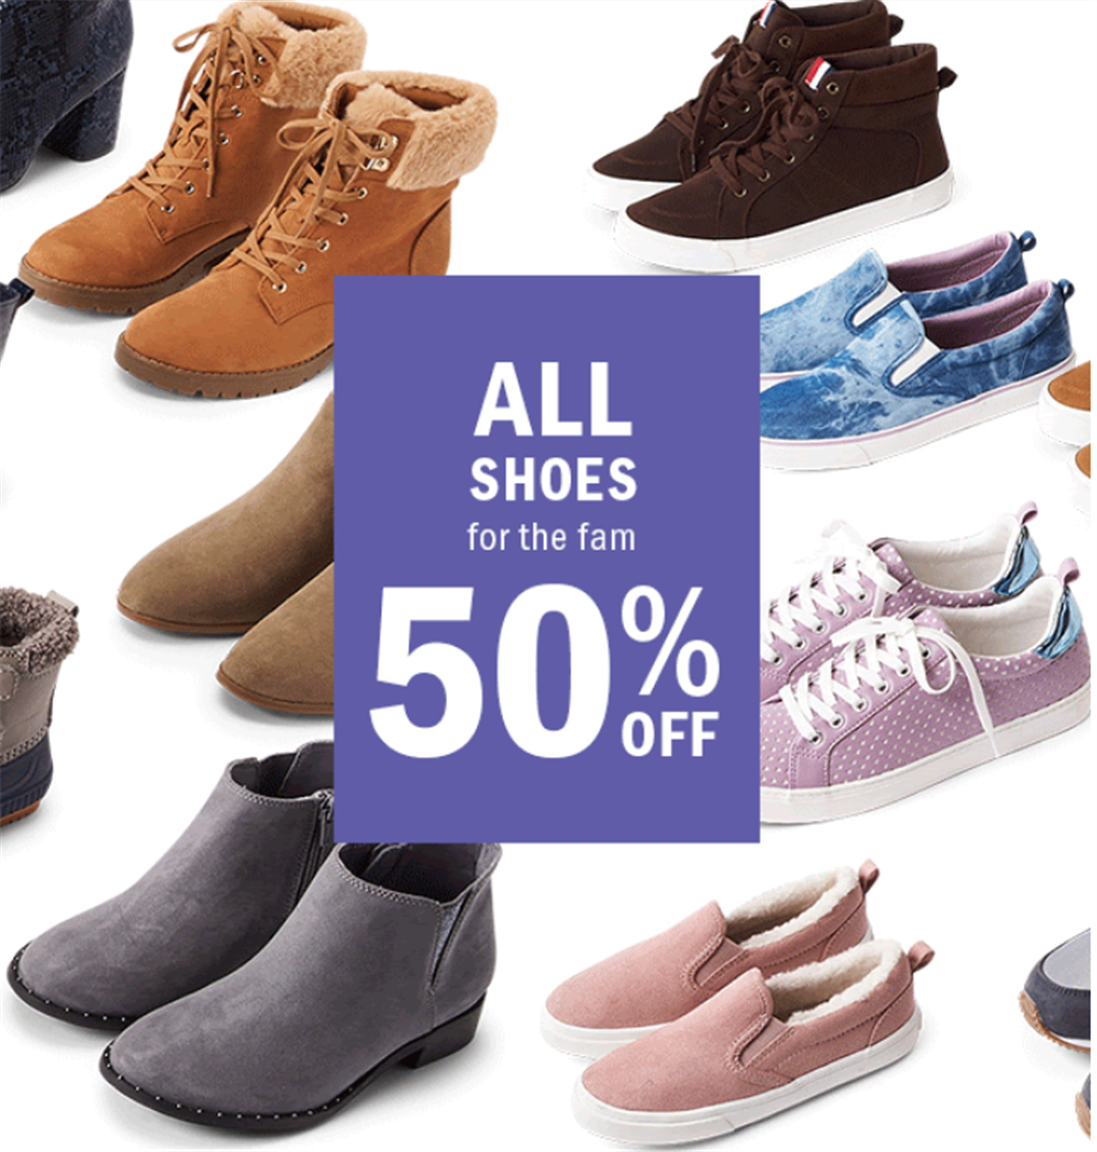 Old Navy – (Today Only) 50% Off Shoes for the Whole Family + Additional 25% Off + Free Store Pickup!